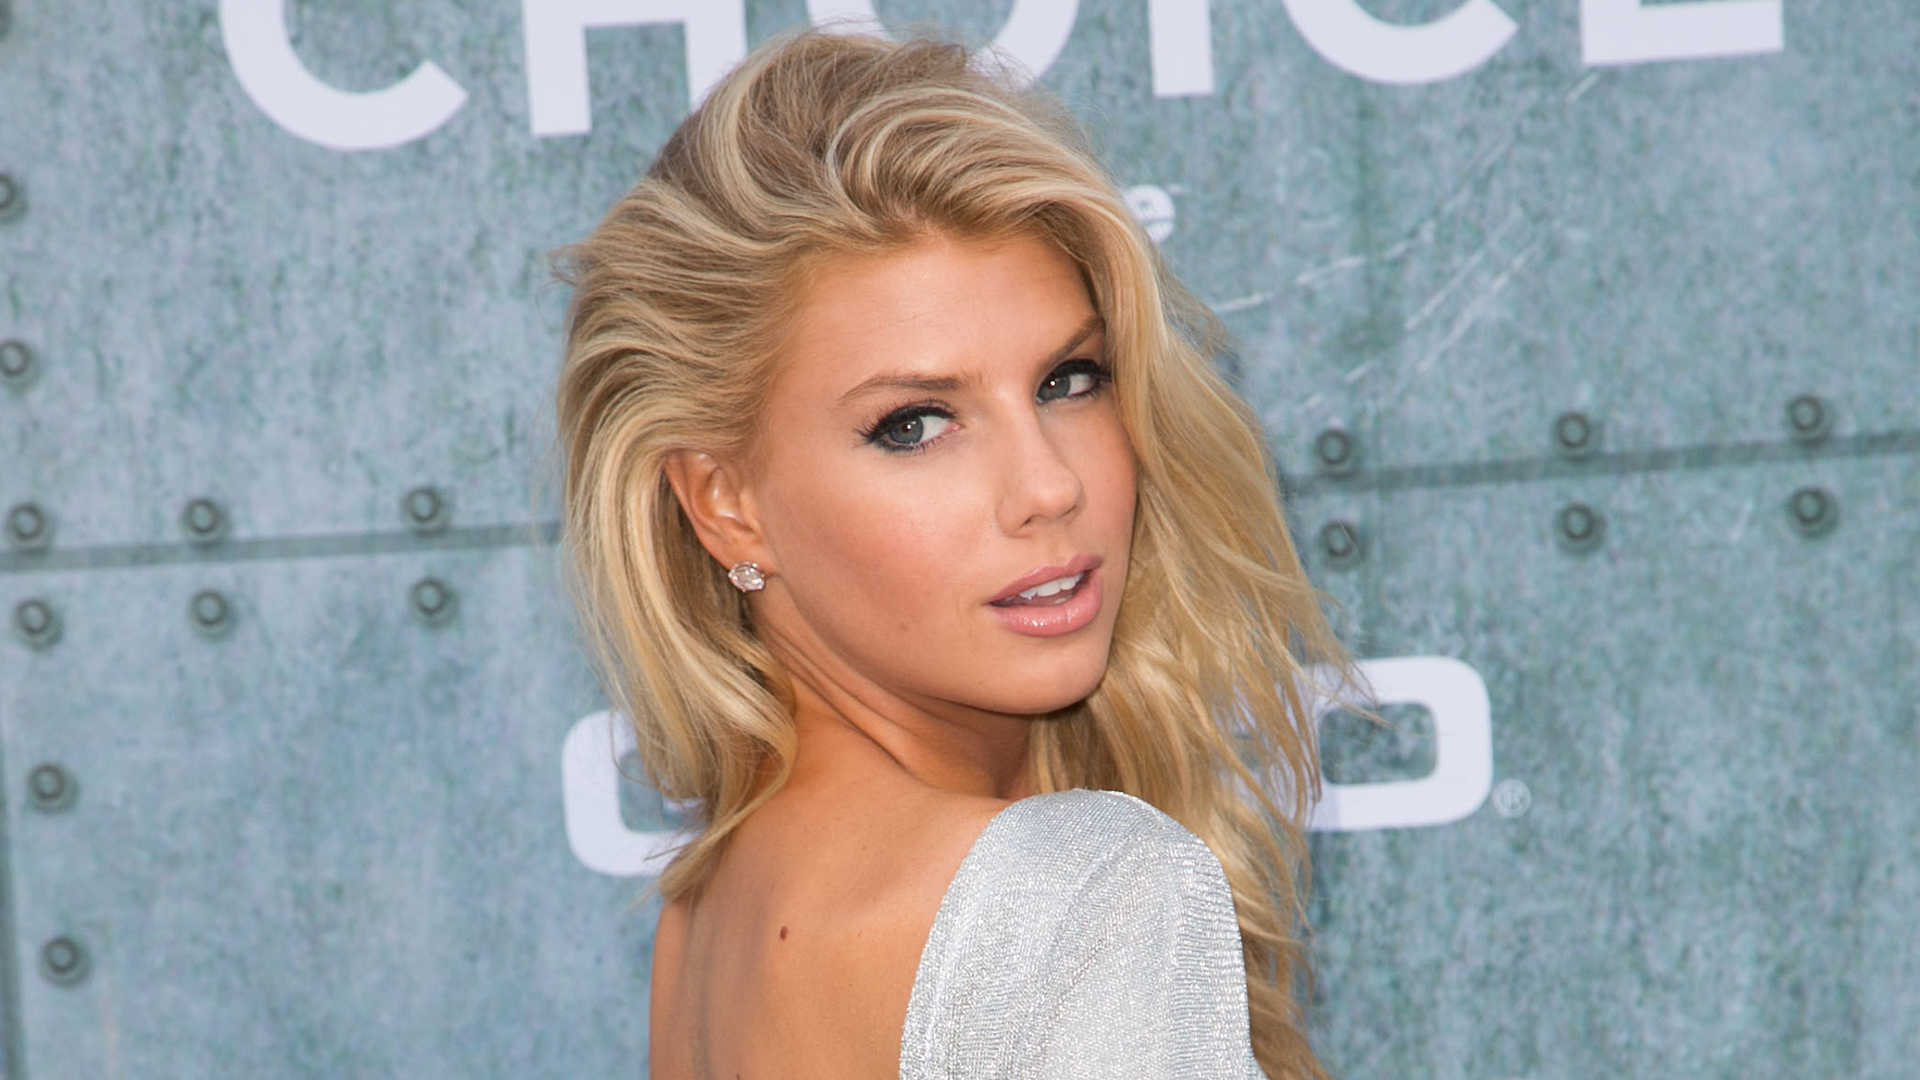 Think, you Carl s charlotte mckinney opinion you